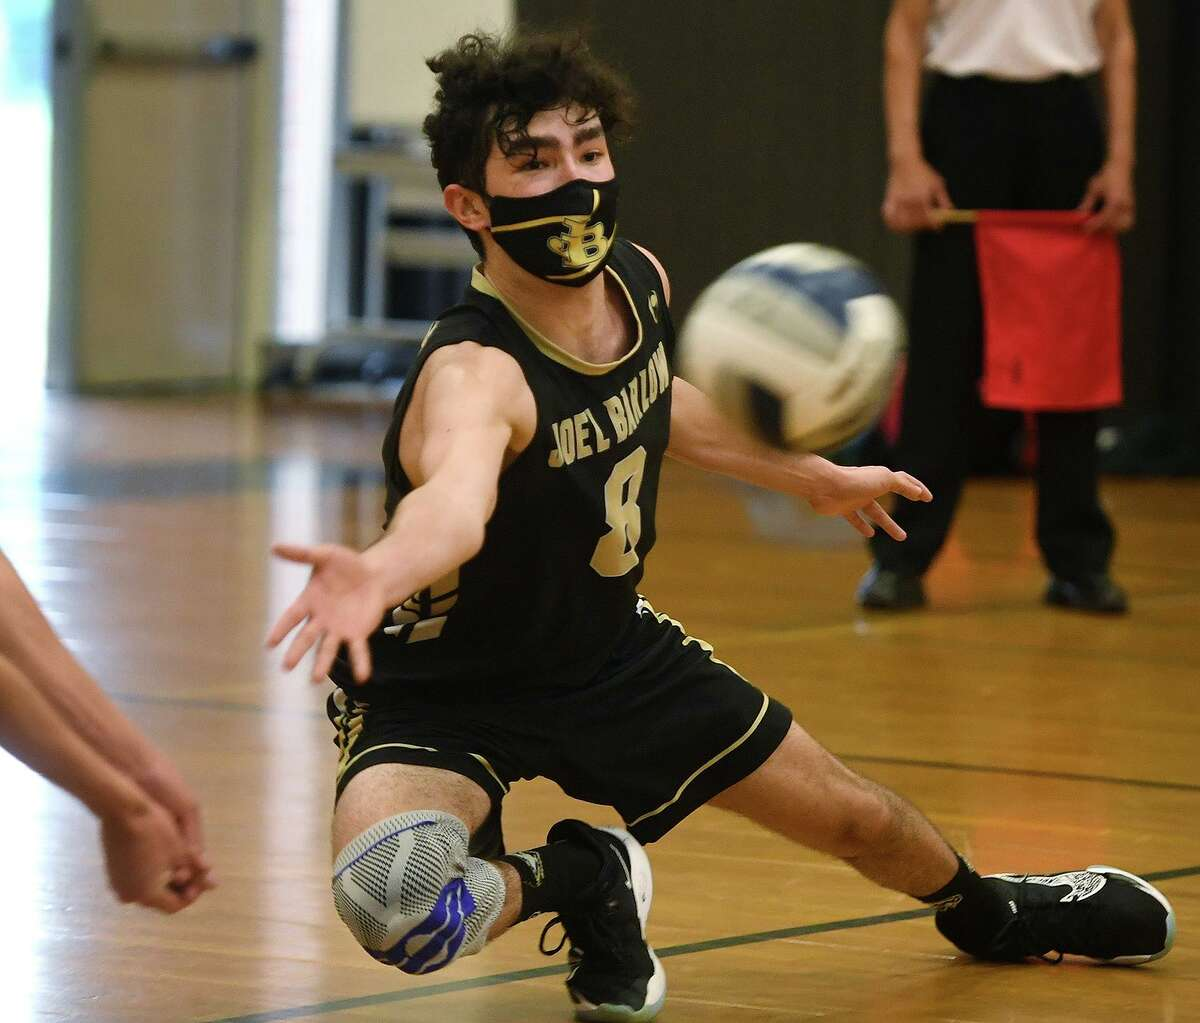 Barlow's Rhys Robichaud reaches to dig the ball during Barlow's 3-0 victory over Newtown in the SWC boys volleyball championship on Wednesday.